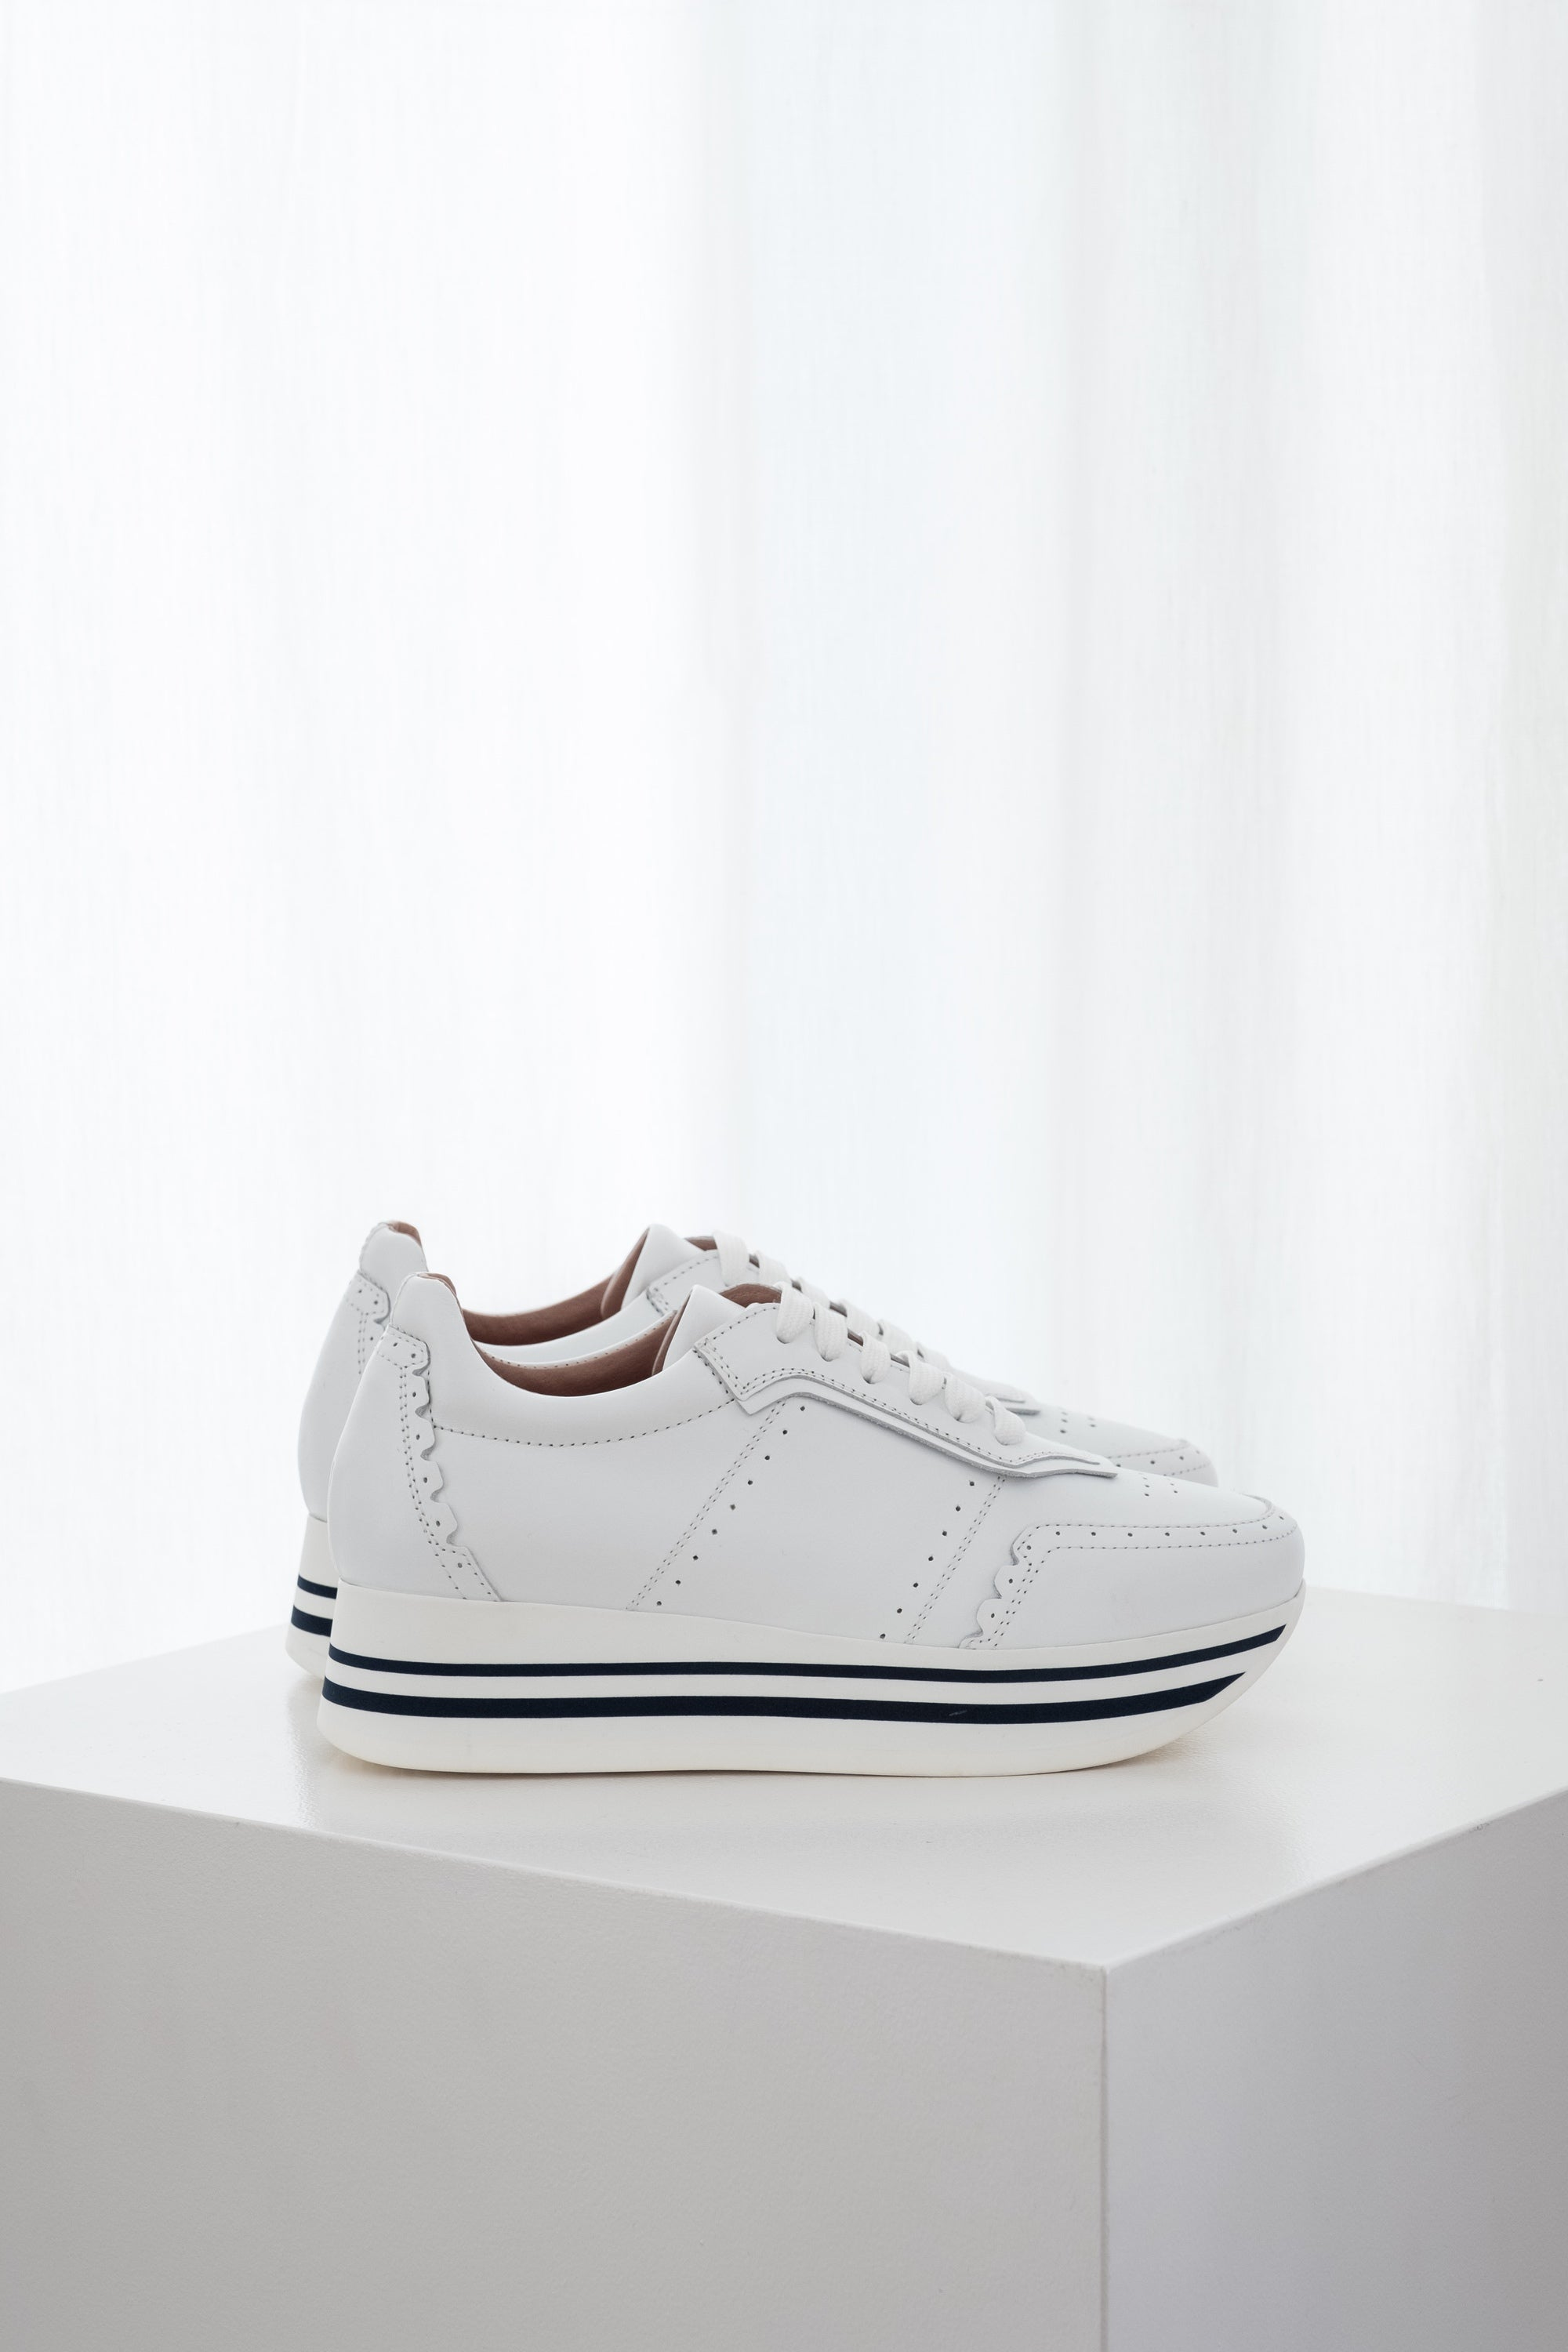 SNEAKER SOTOGRANDE - Shoes - SCAPA FASHION - SCAPA OFFICIAL